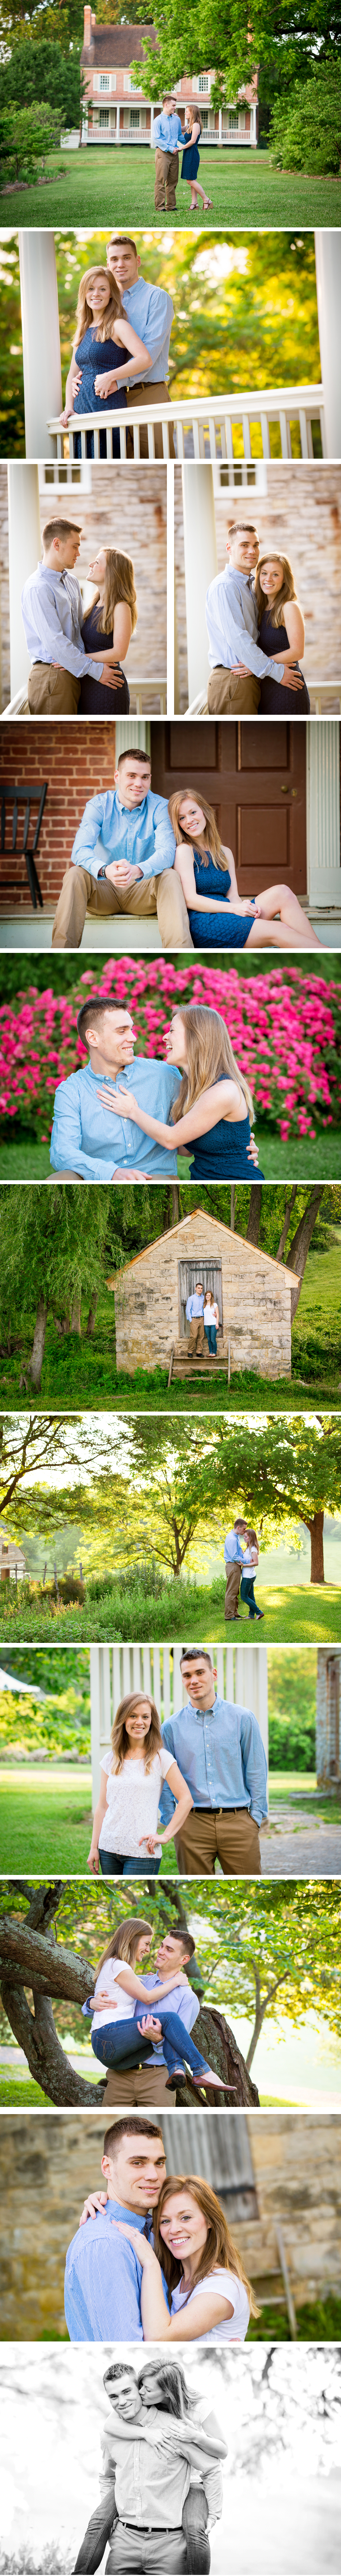 Locust Grove Engagement Photos eMotion image